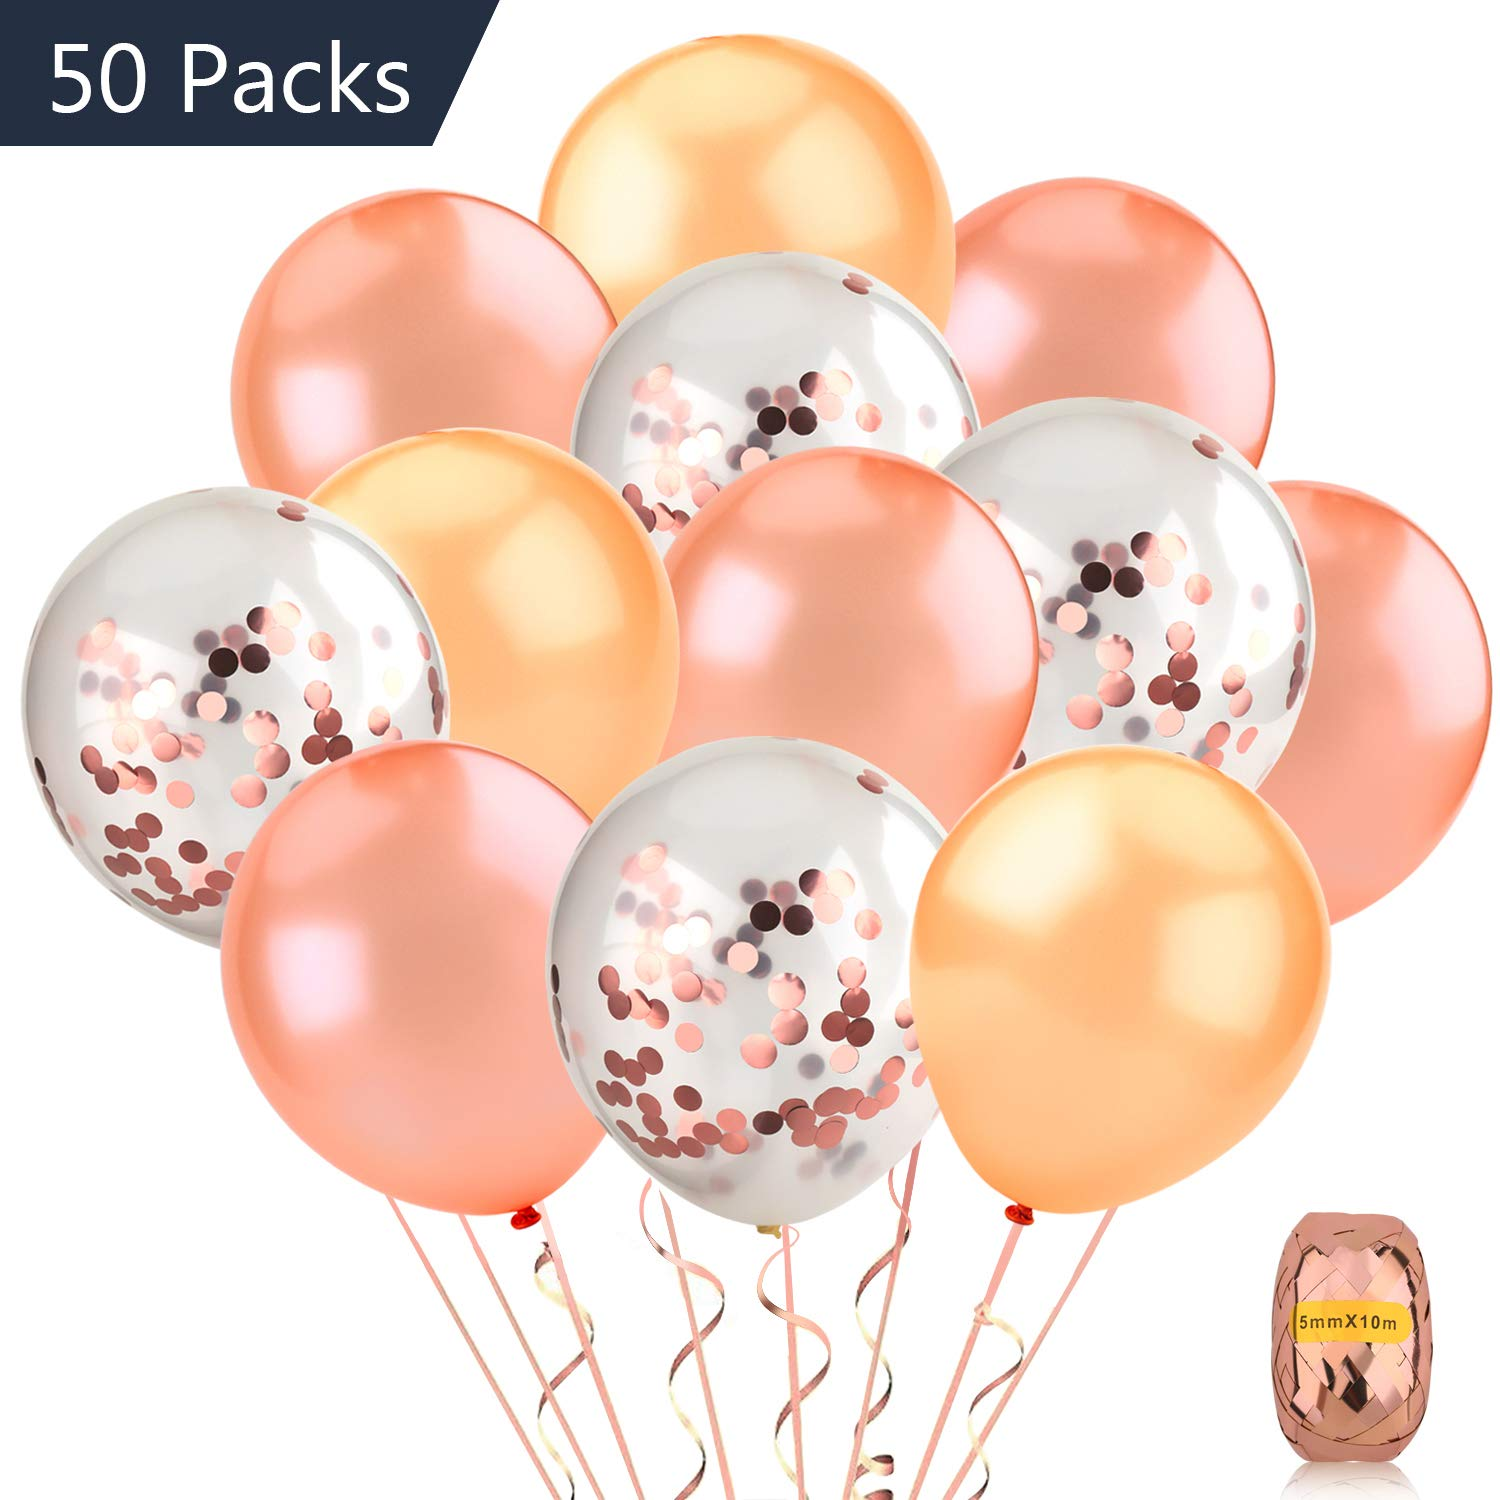 COOLOO 50 Pack 12inch Rose Gold Confetti Balloon Set Including 20 Pieces Pre-Filled Confetti Balloons and 30 Rose Gold Latex Balloons with a Rose Gold Curling Ribbon for Wedding, Rose Gold Party Decorations, Bridal Shower, Birthday Party